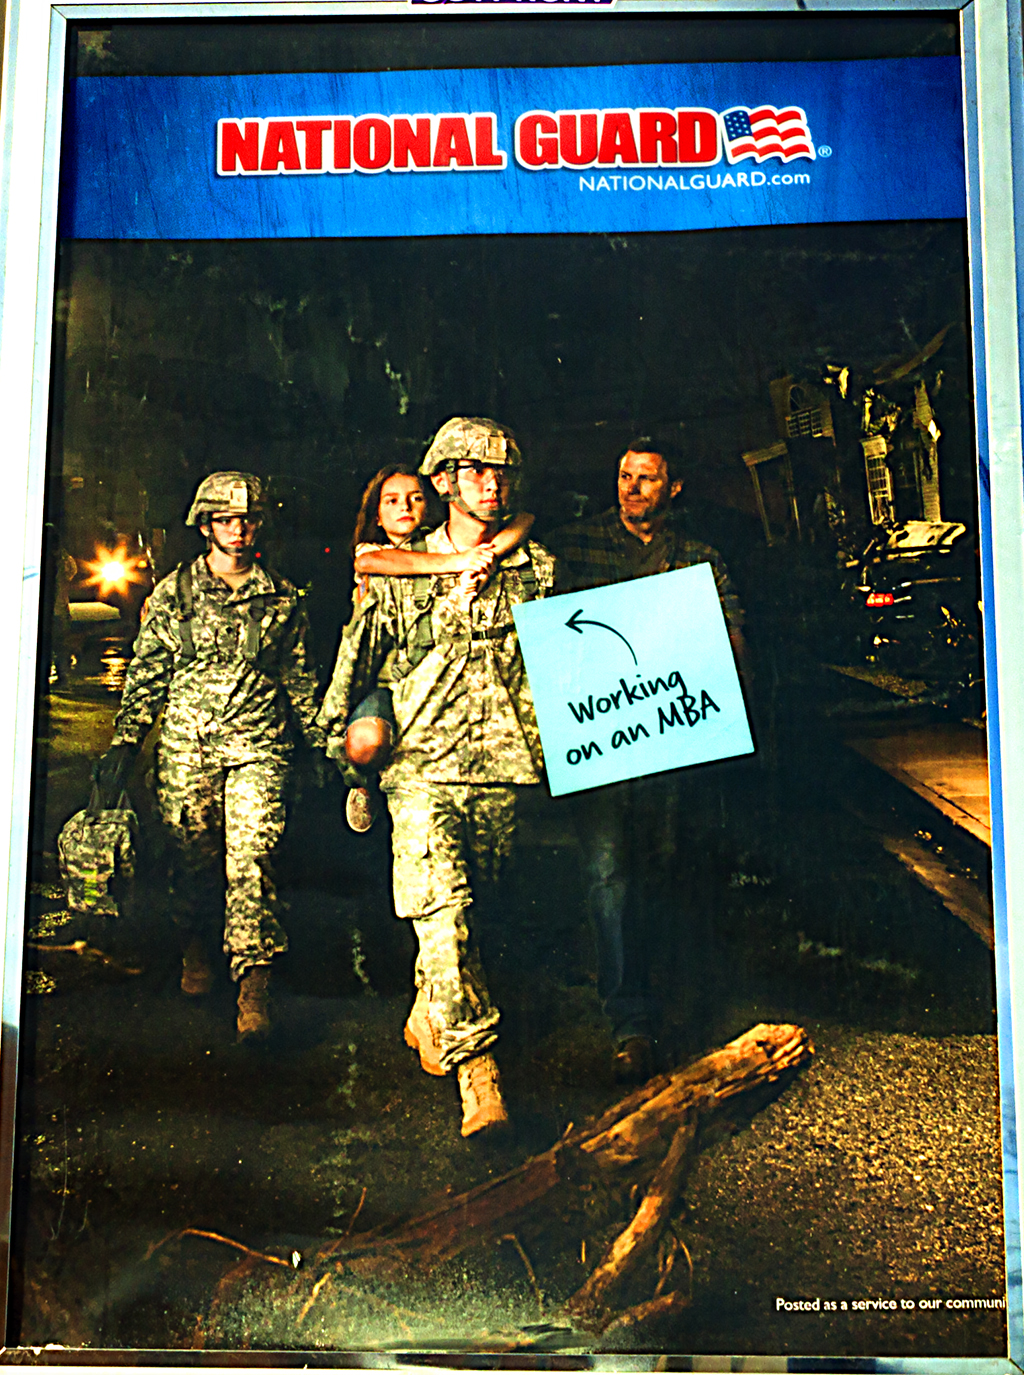 NATIONAL-GUARD-recruiting-billboard-on-3-22-15--South-Philadelphia-(detail)